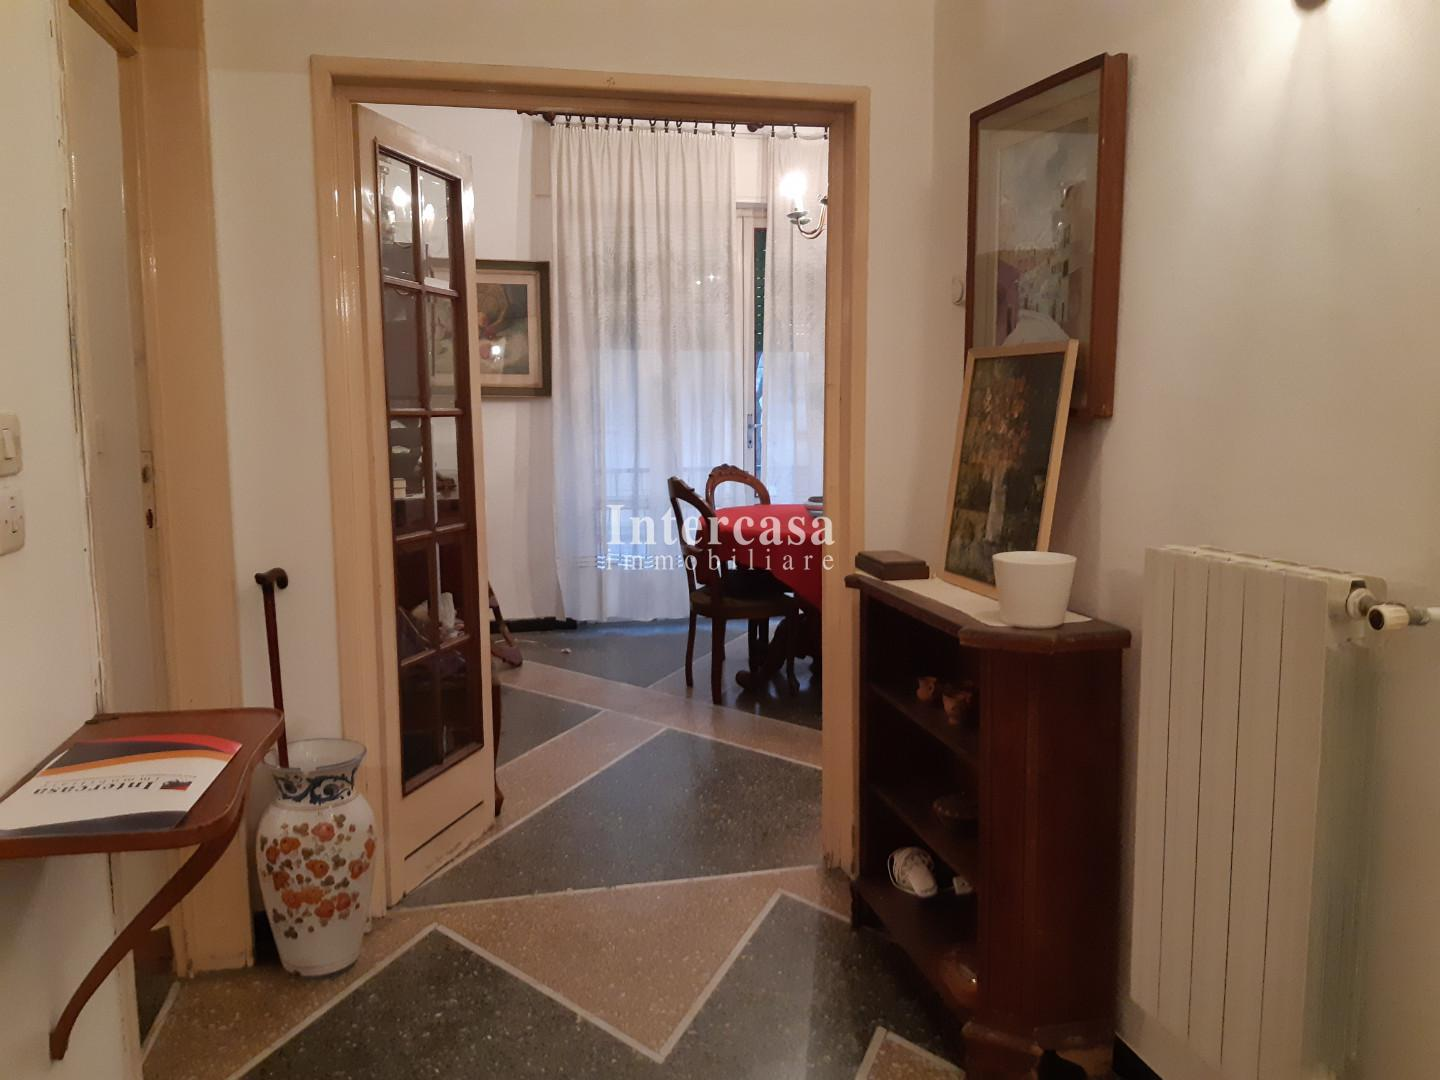 Apartment for sale in Viareggio (LU)